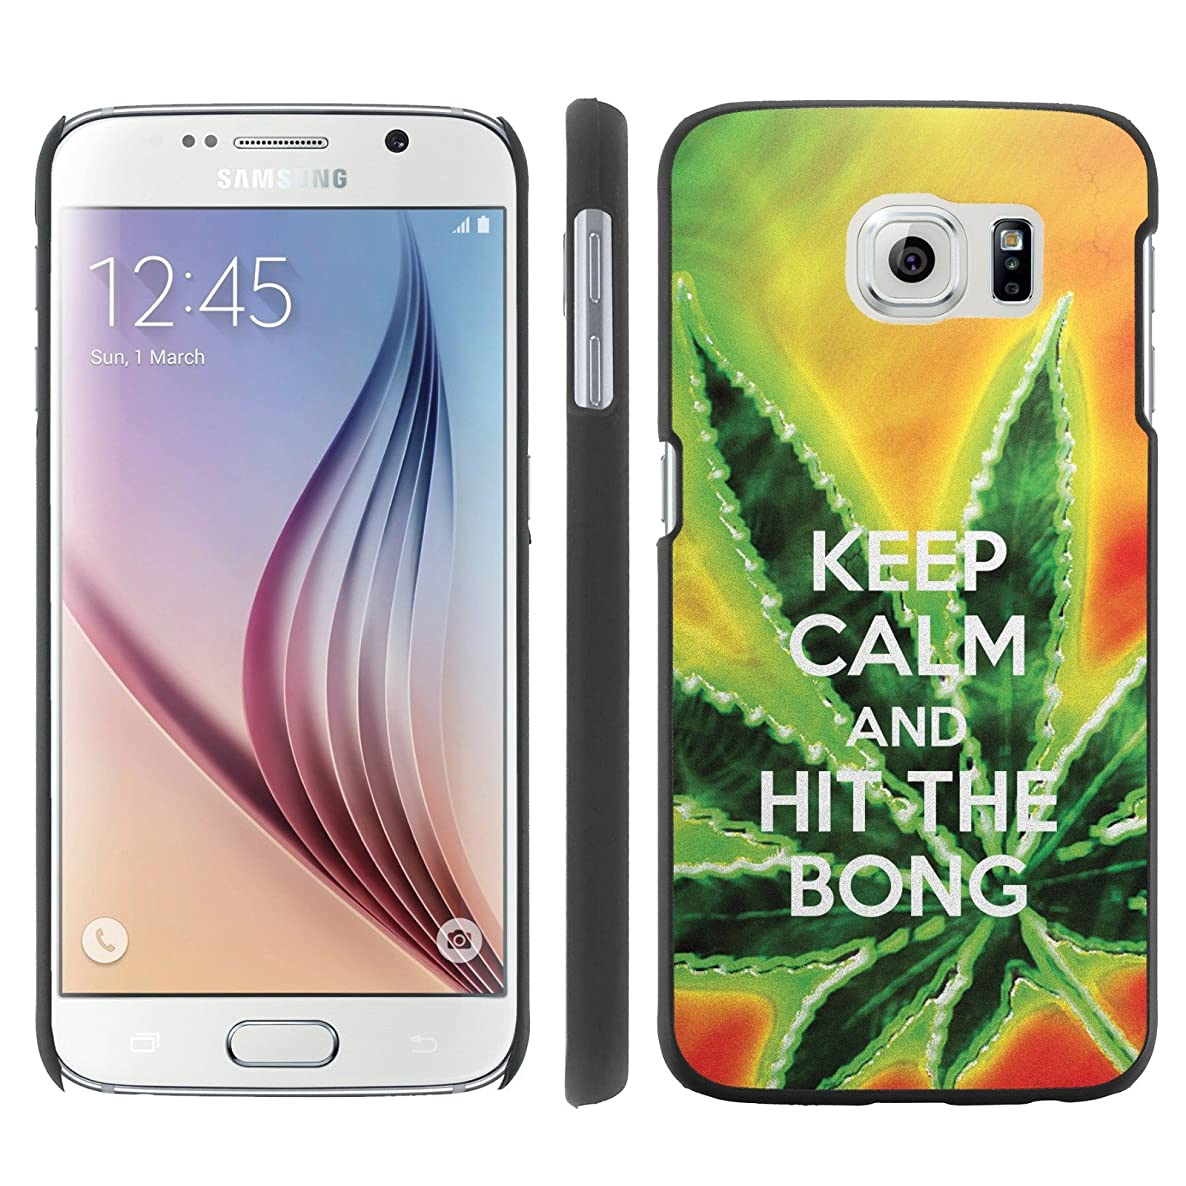 Mobiflare, Slim Clip-on Phone Case, for [Samsung Galaxy S6 G920] - Keep Calm Hit the Bong